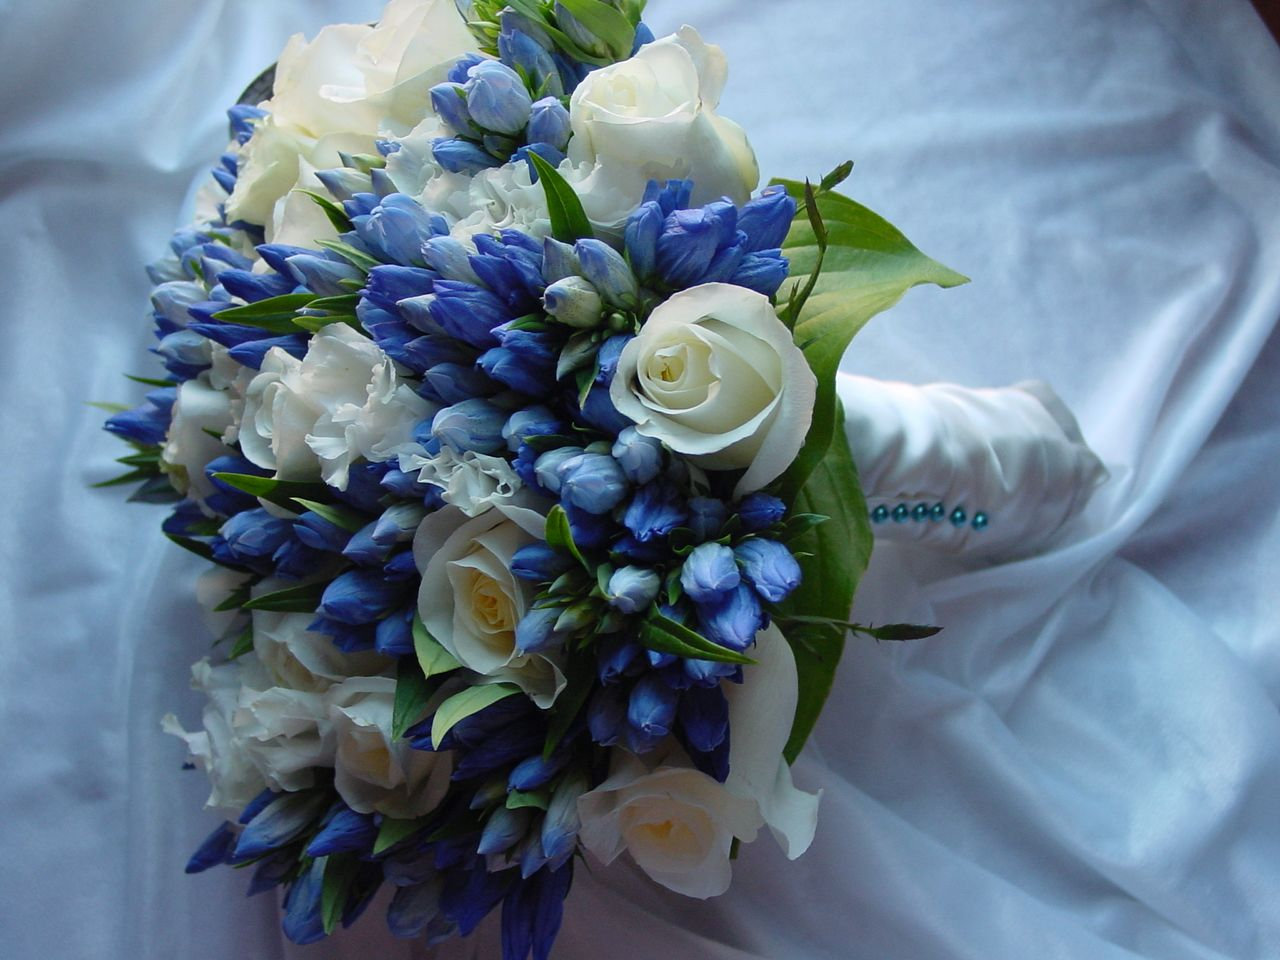 Blue wedding bouquets ideas inspirations blue bridal bridal blue wedding bouquets ideas inspirations junglespirit Images